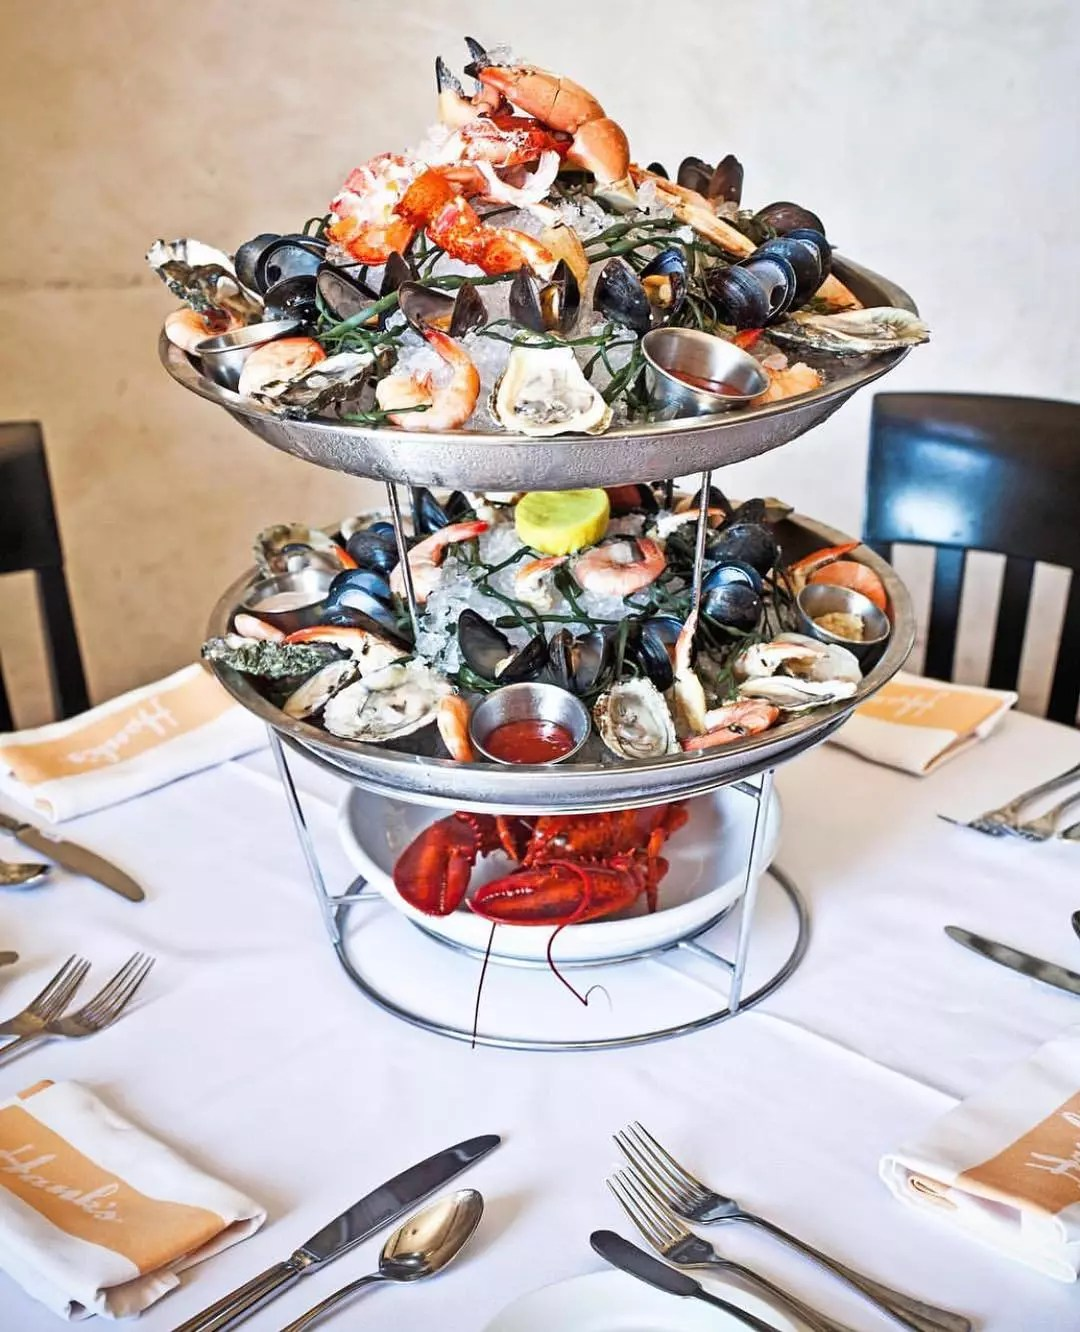 Multiple types of seafood piles on a multi-tiered serving tray. Photo by Instagram user @hanksseafood